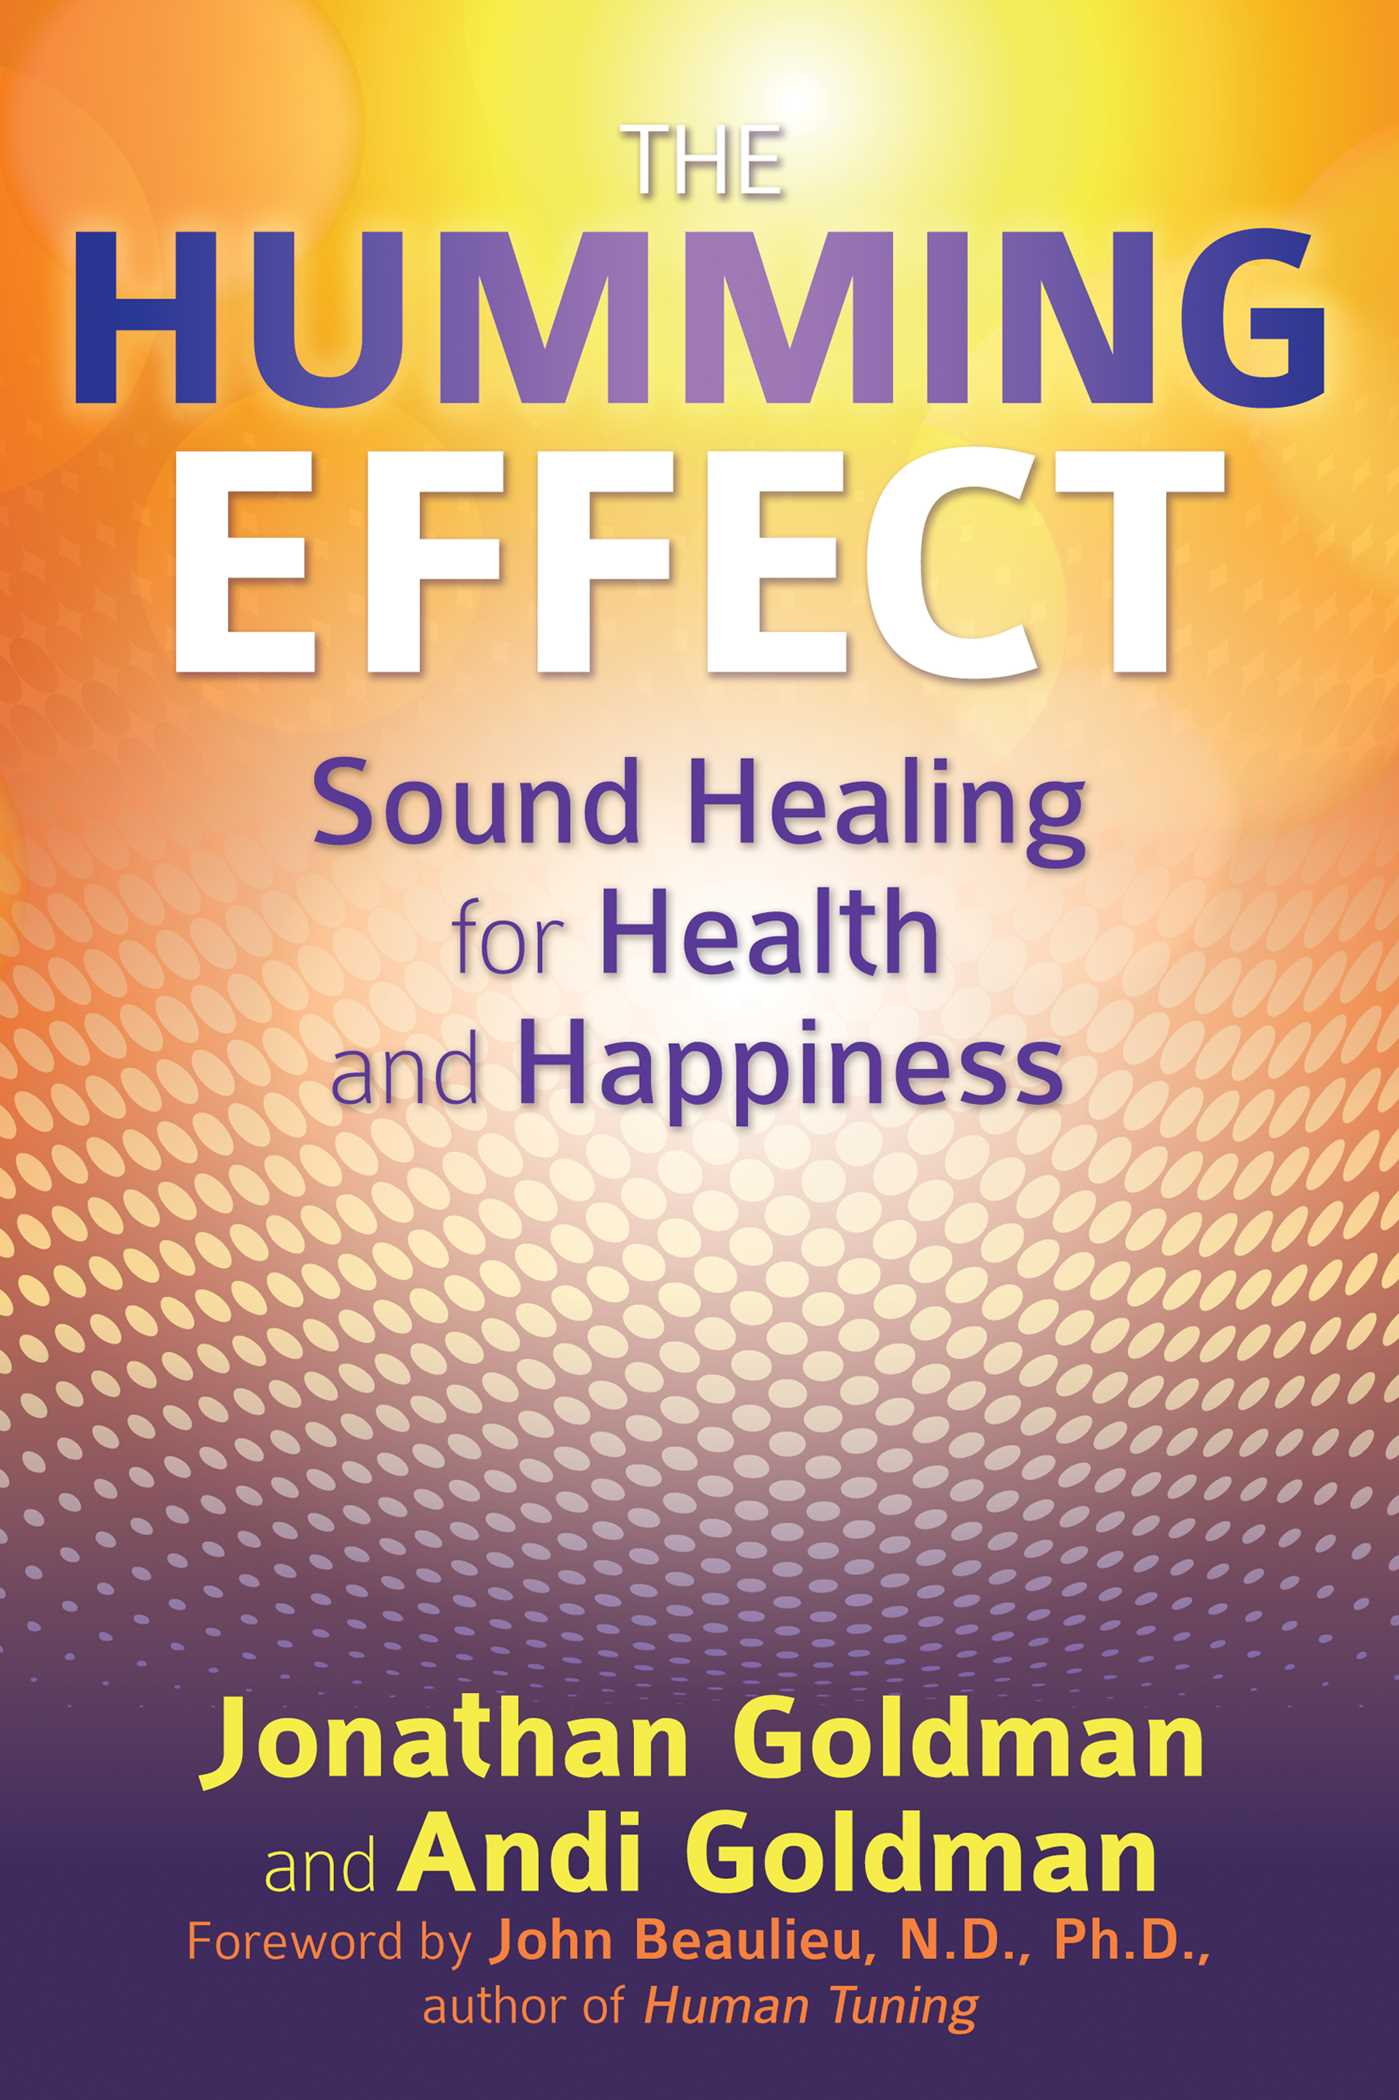 The humming effect 9781620554852 hr